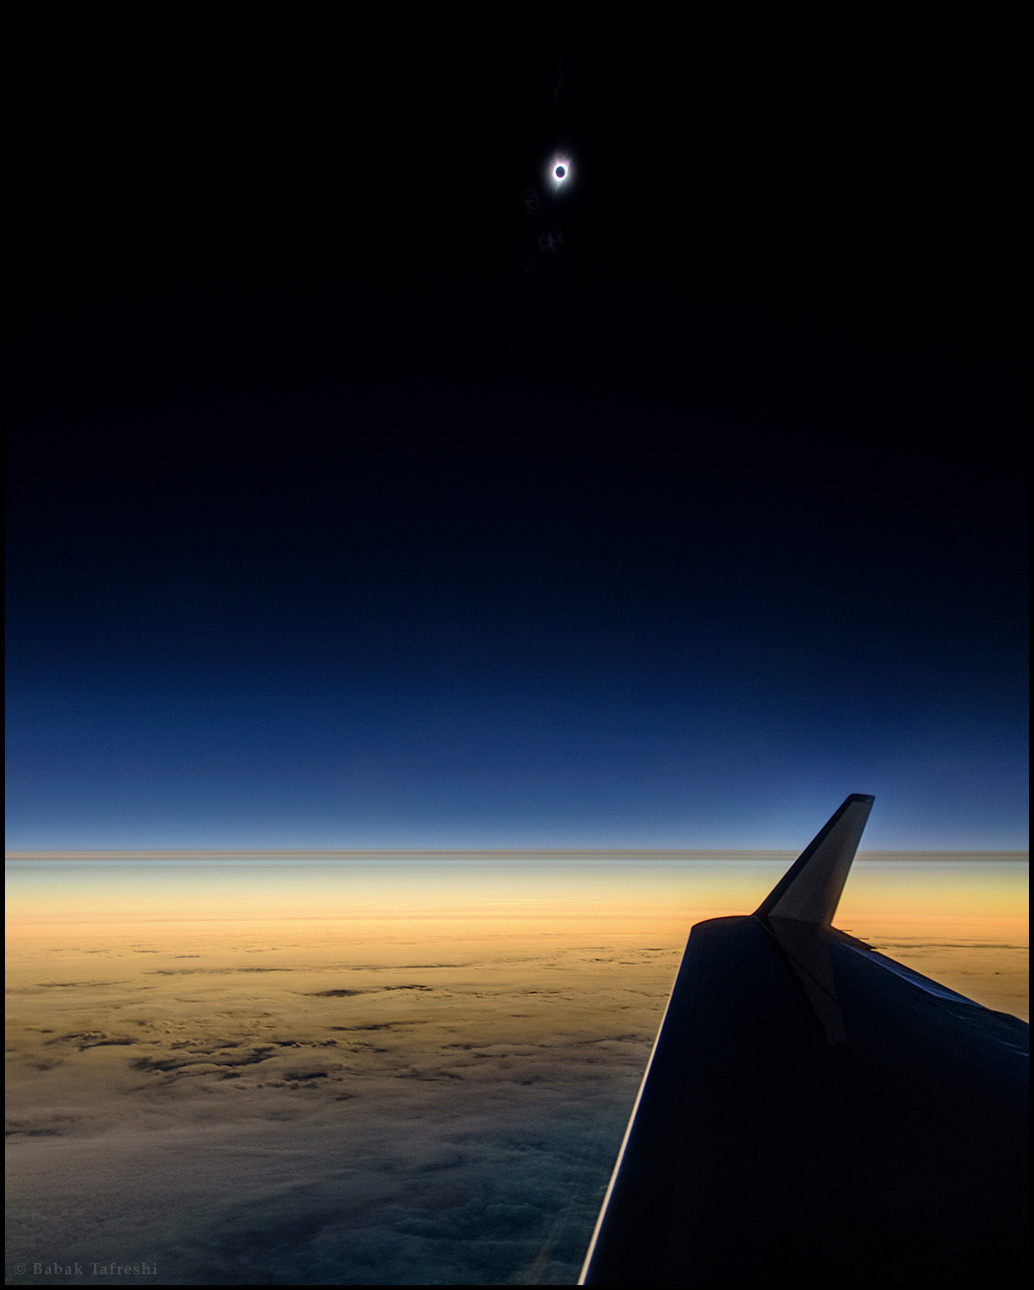 On a jet 45000 ft above the Pacific, the first view to August 2017 total solar eclipse is photographed before the moon shadow reaches the mainland US.